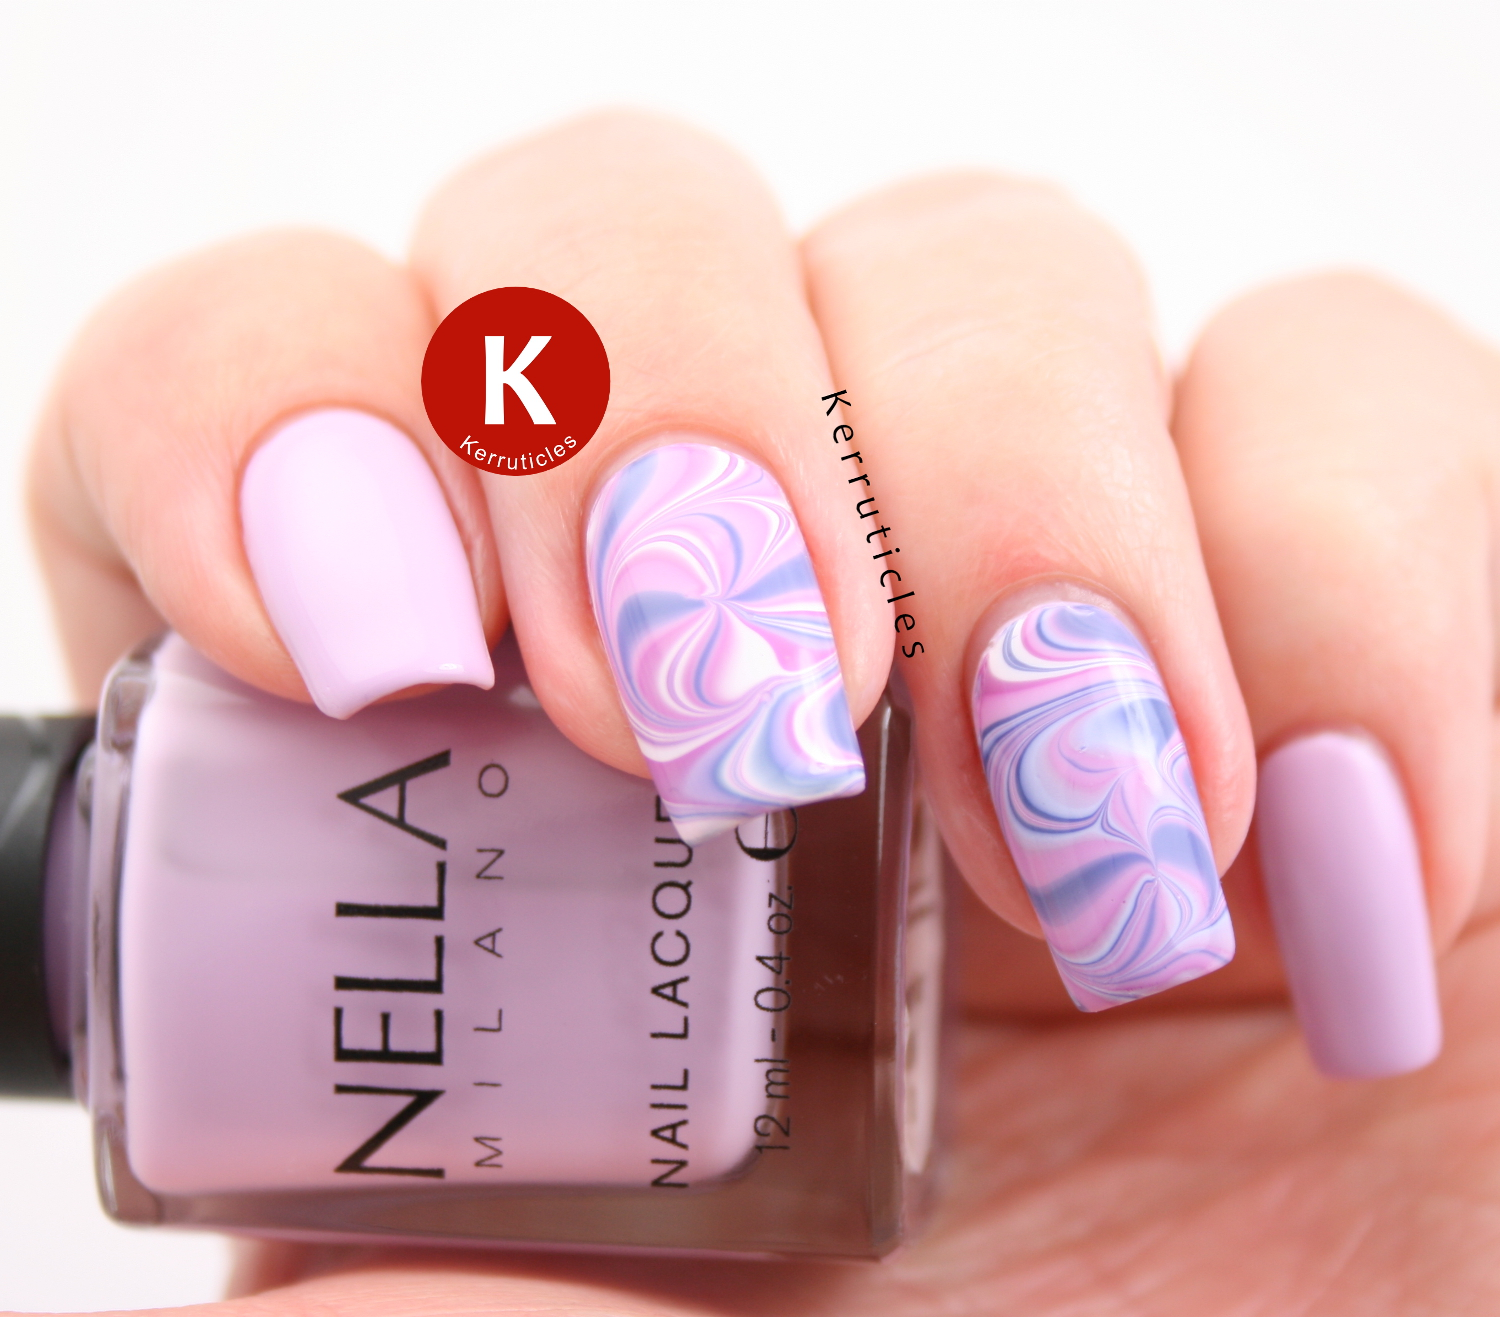 Swirl water marble using Nella Milano Lady Lavender and also Nella Milano Chantilly Cream, Vintage Violet and Madame Pompadour